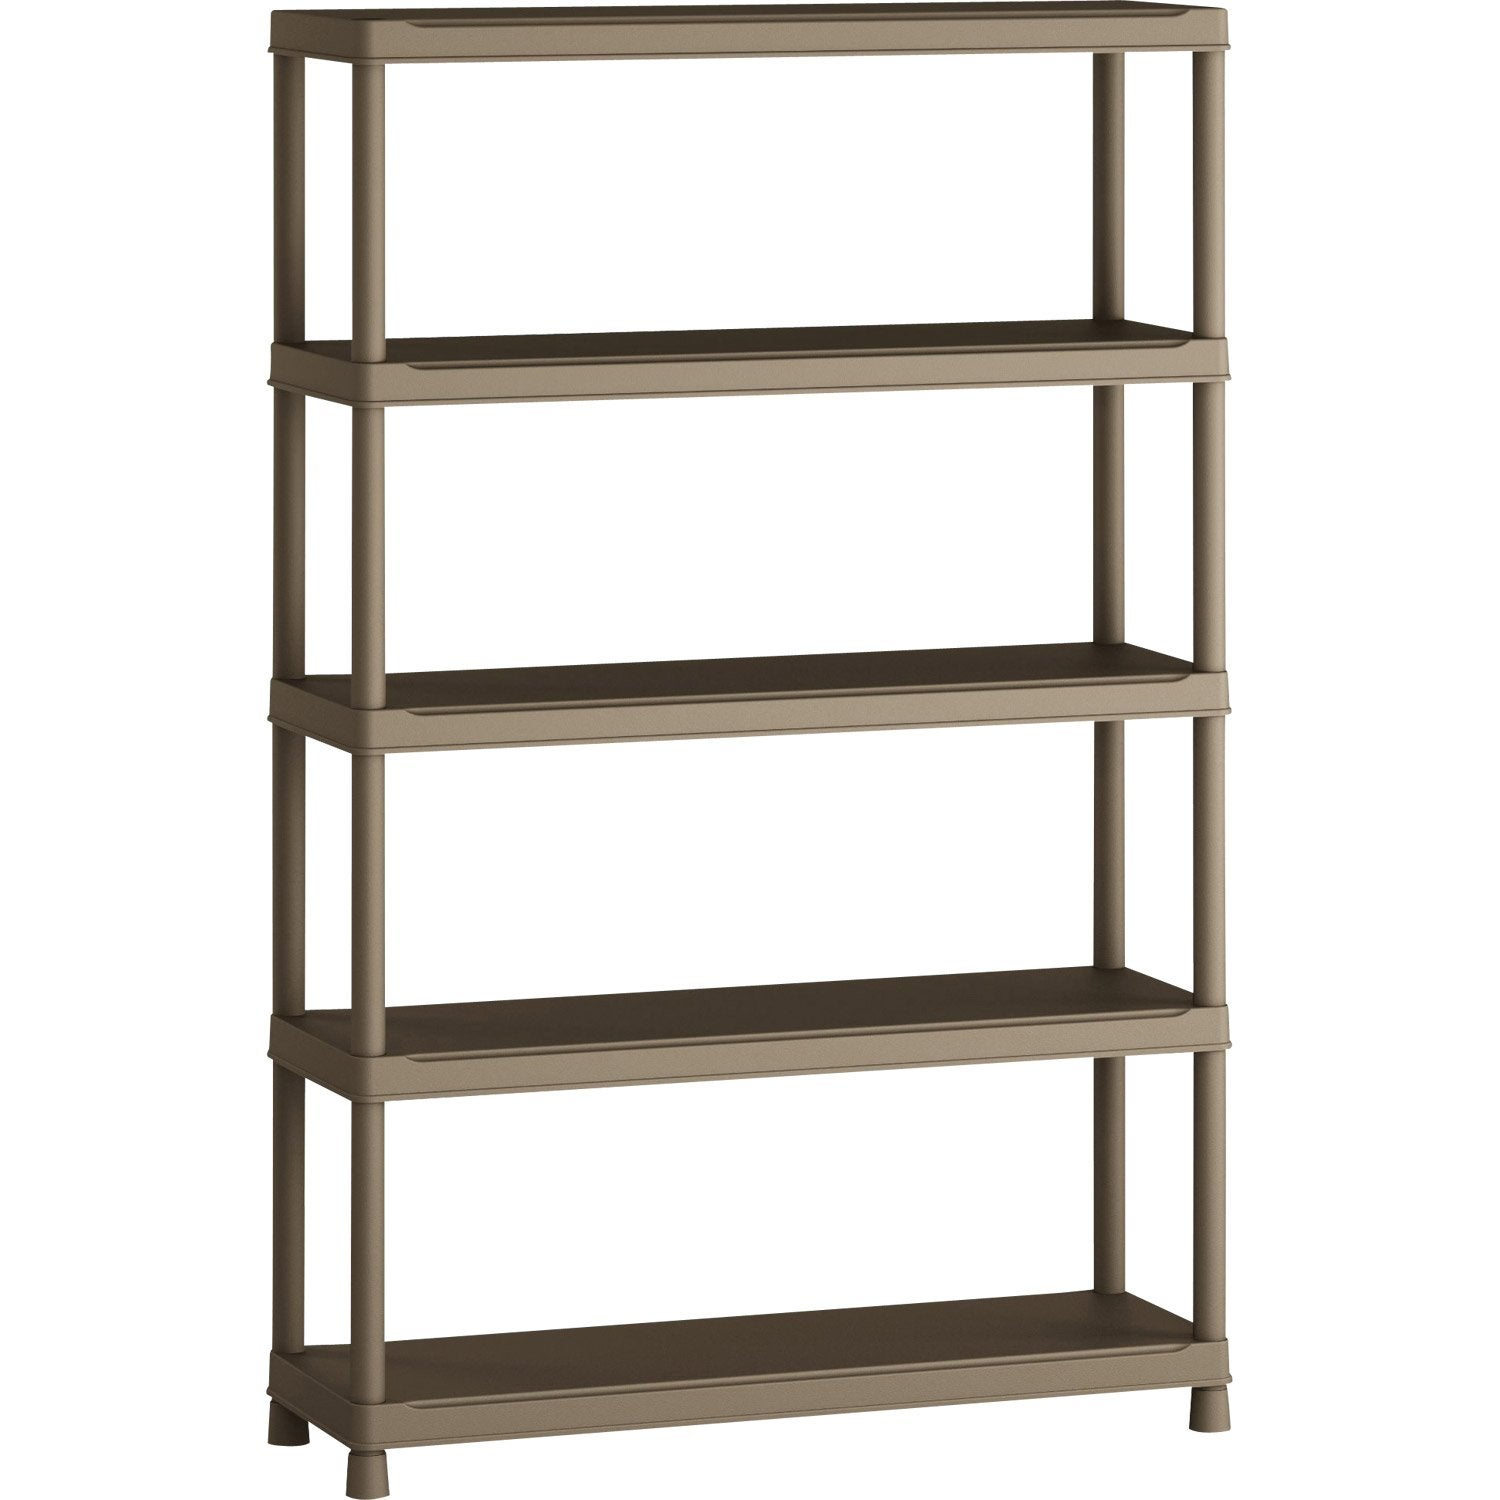 Etag re en r sine 5 tablettes spaceo h181xl120xp40 cm leroy merlin - Leroy merlin etagere metal ...